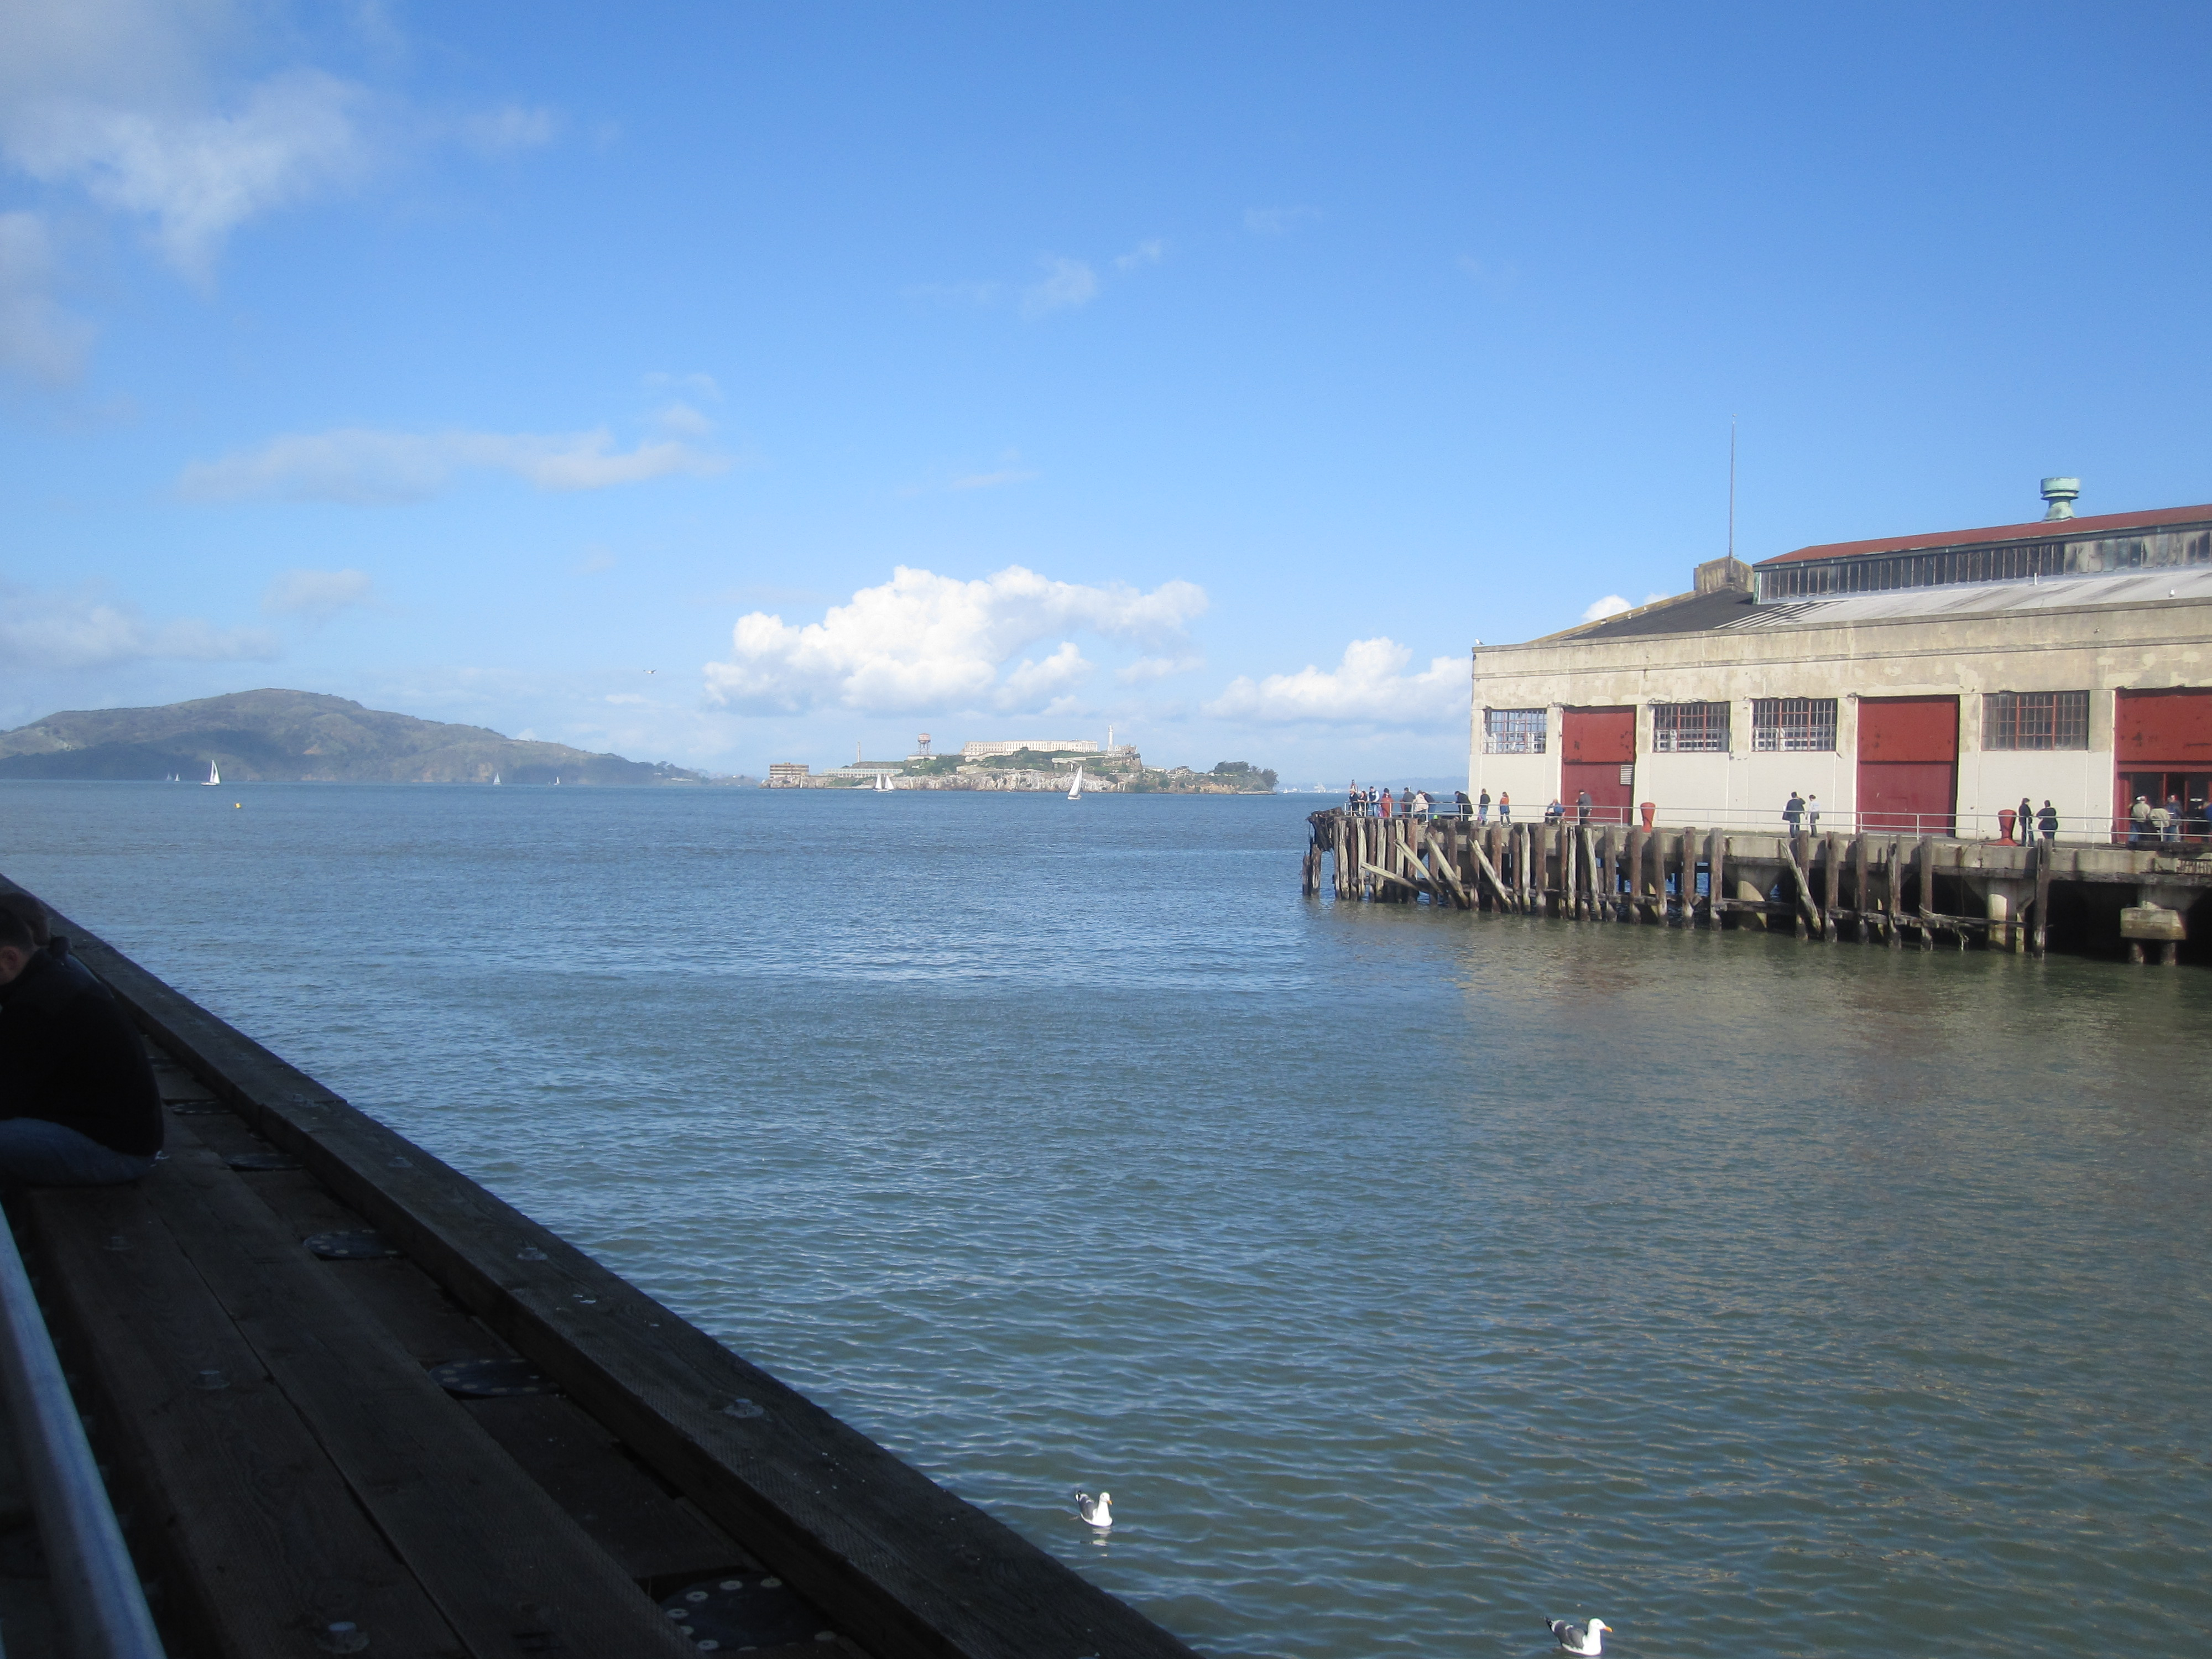 The event is held at Fort Mason on the San Francisco Bay. The view is of Alcatraz.